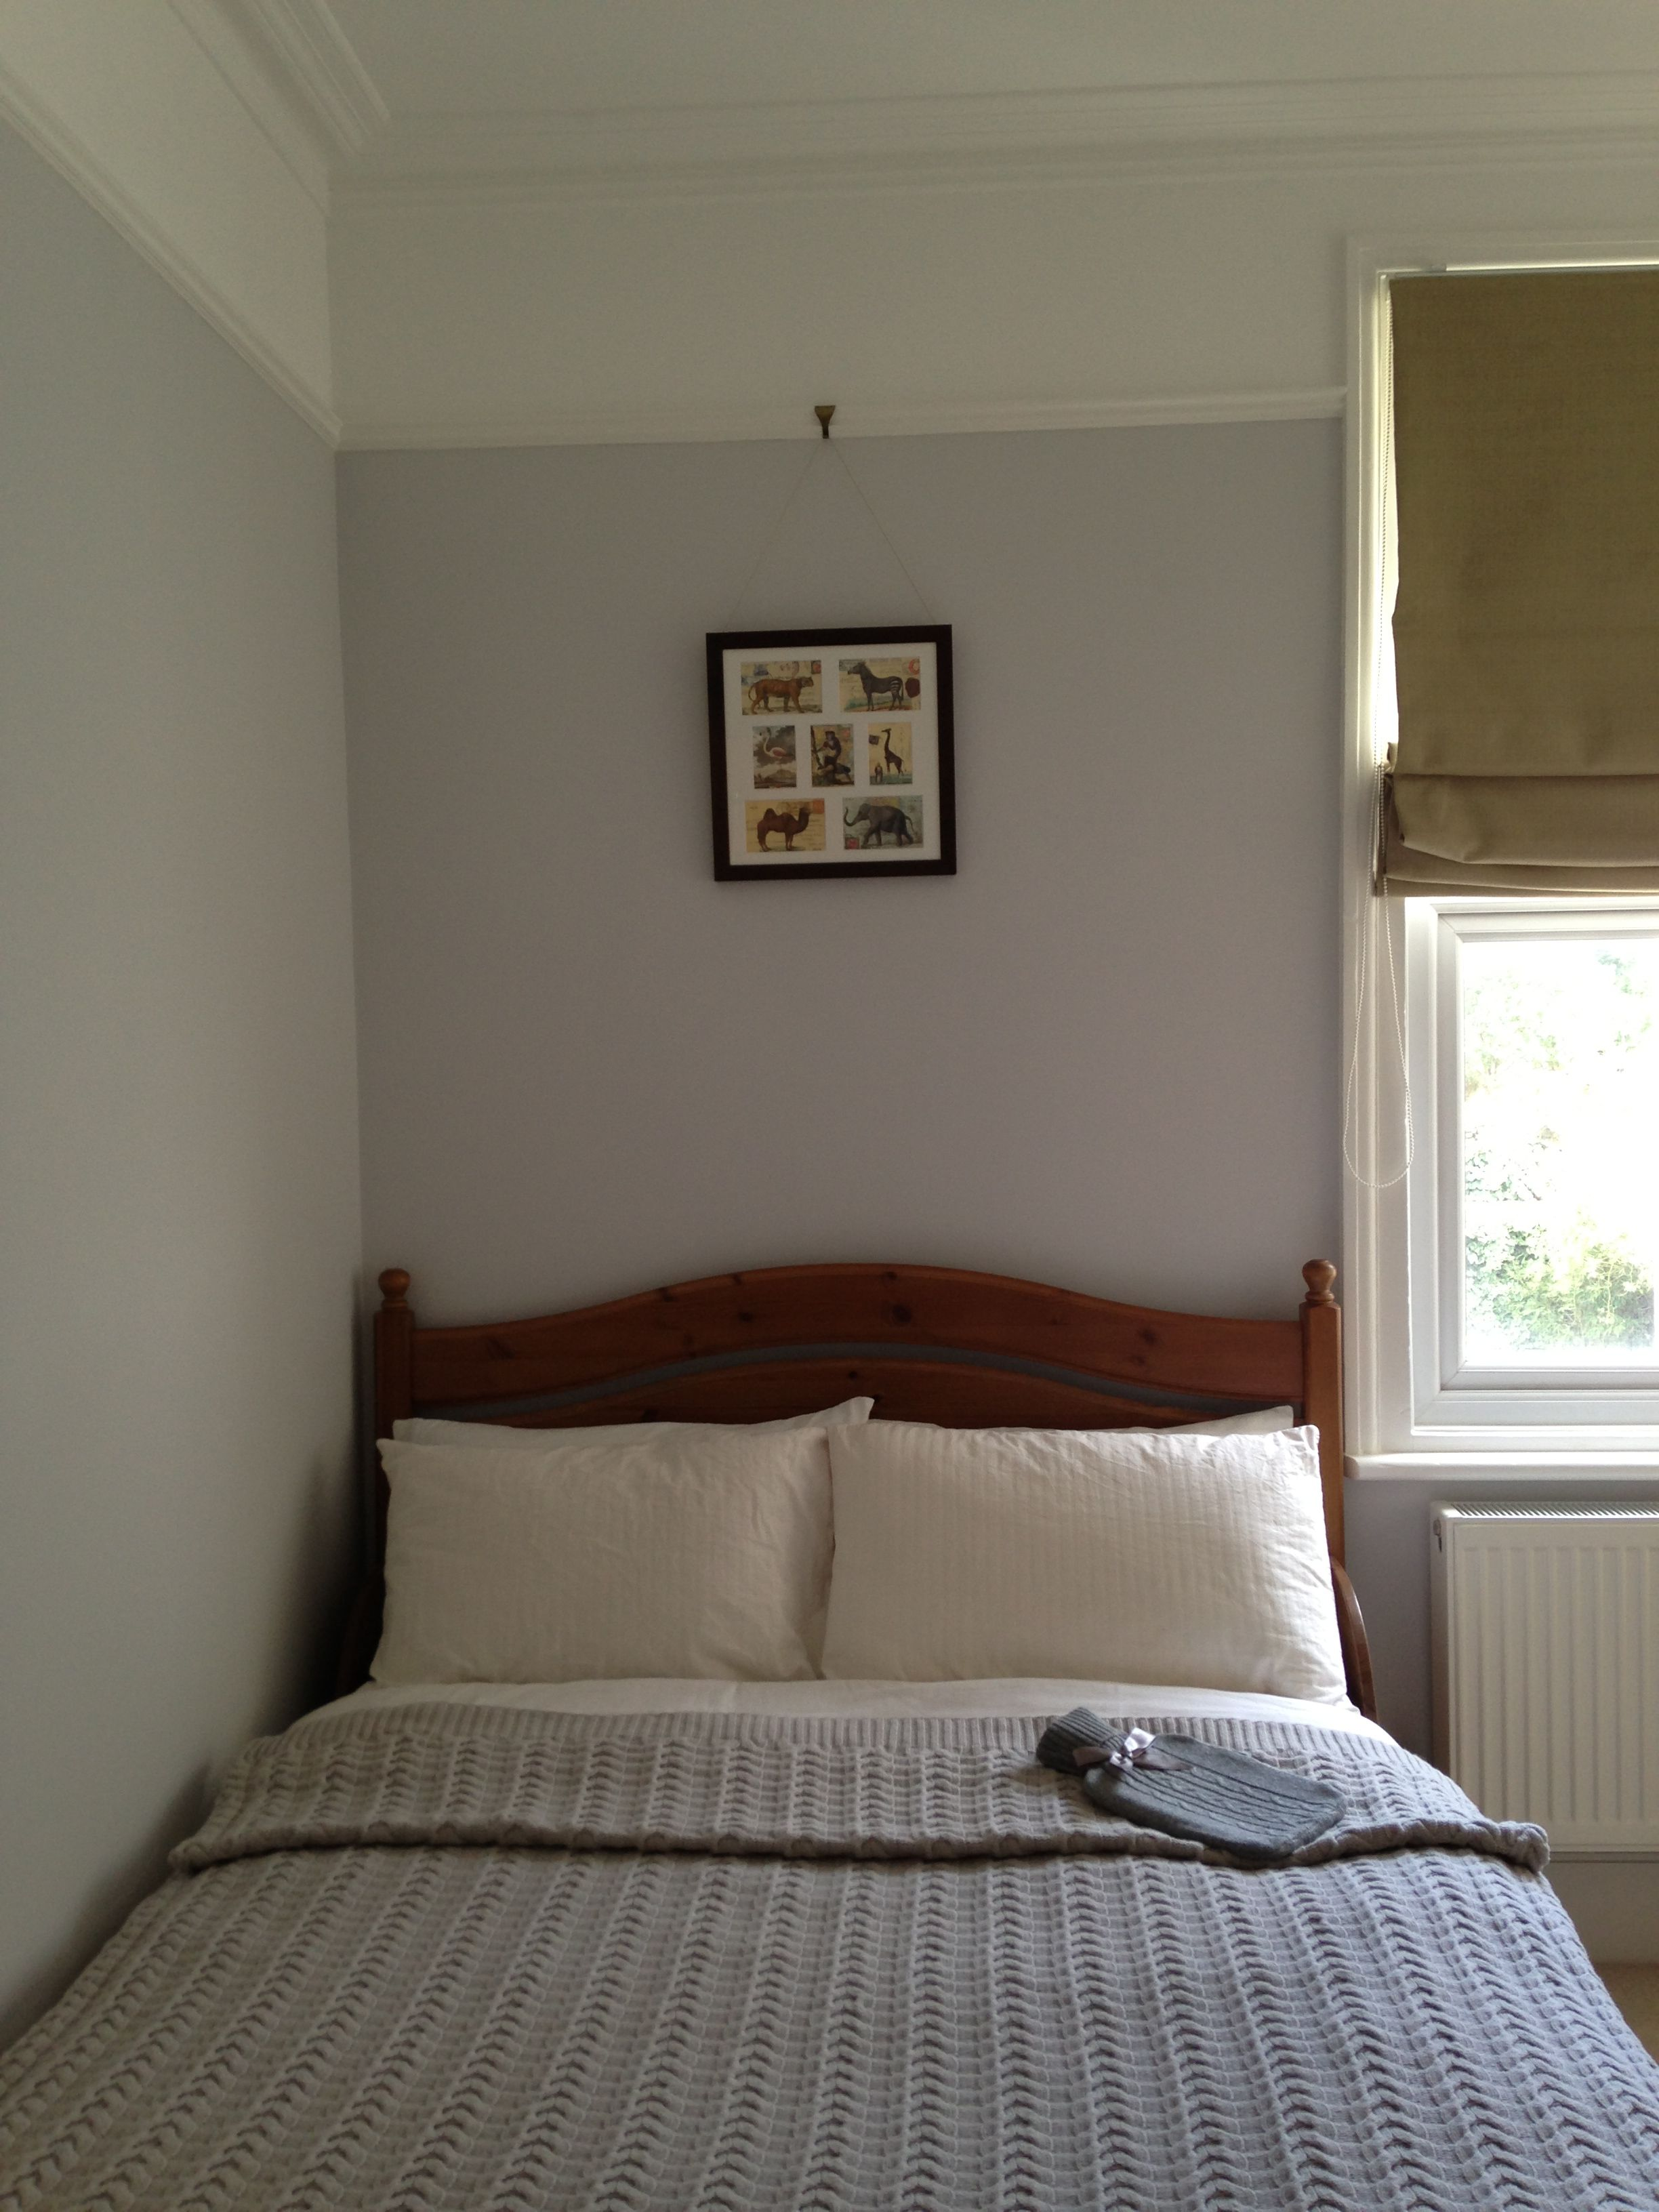 Dulux polished pebble google search home pinterest for Dulux paint ideas bedroom